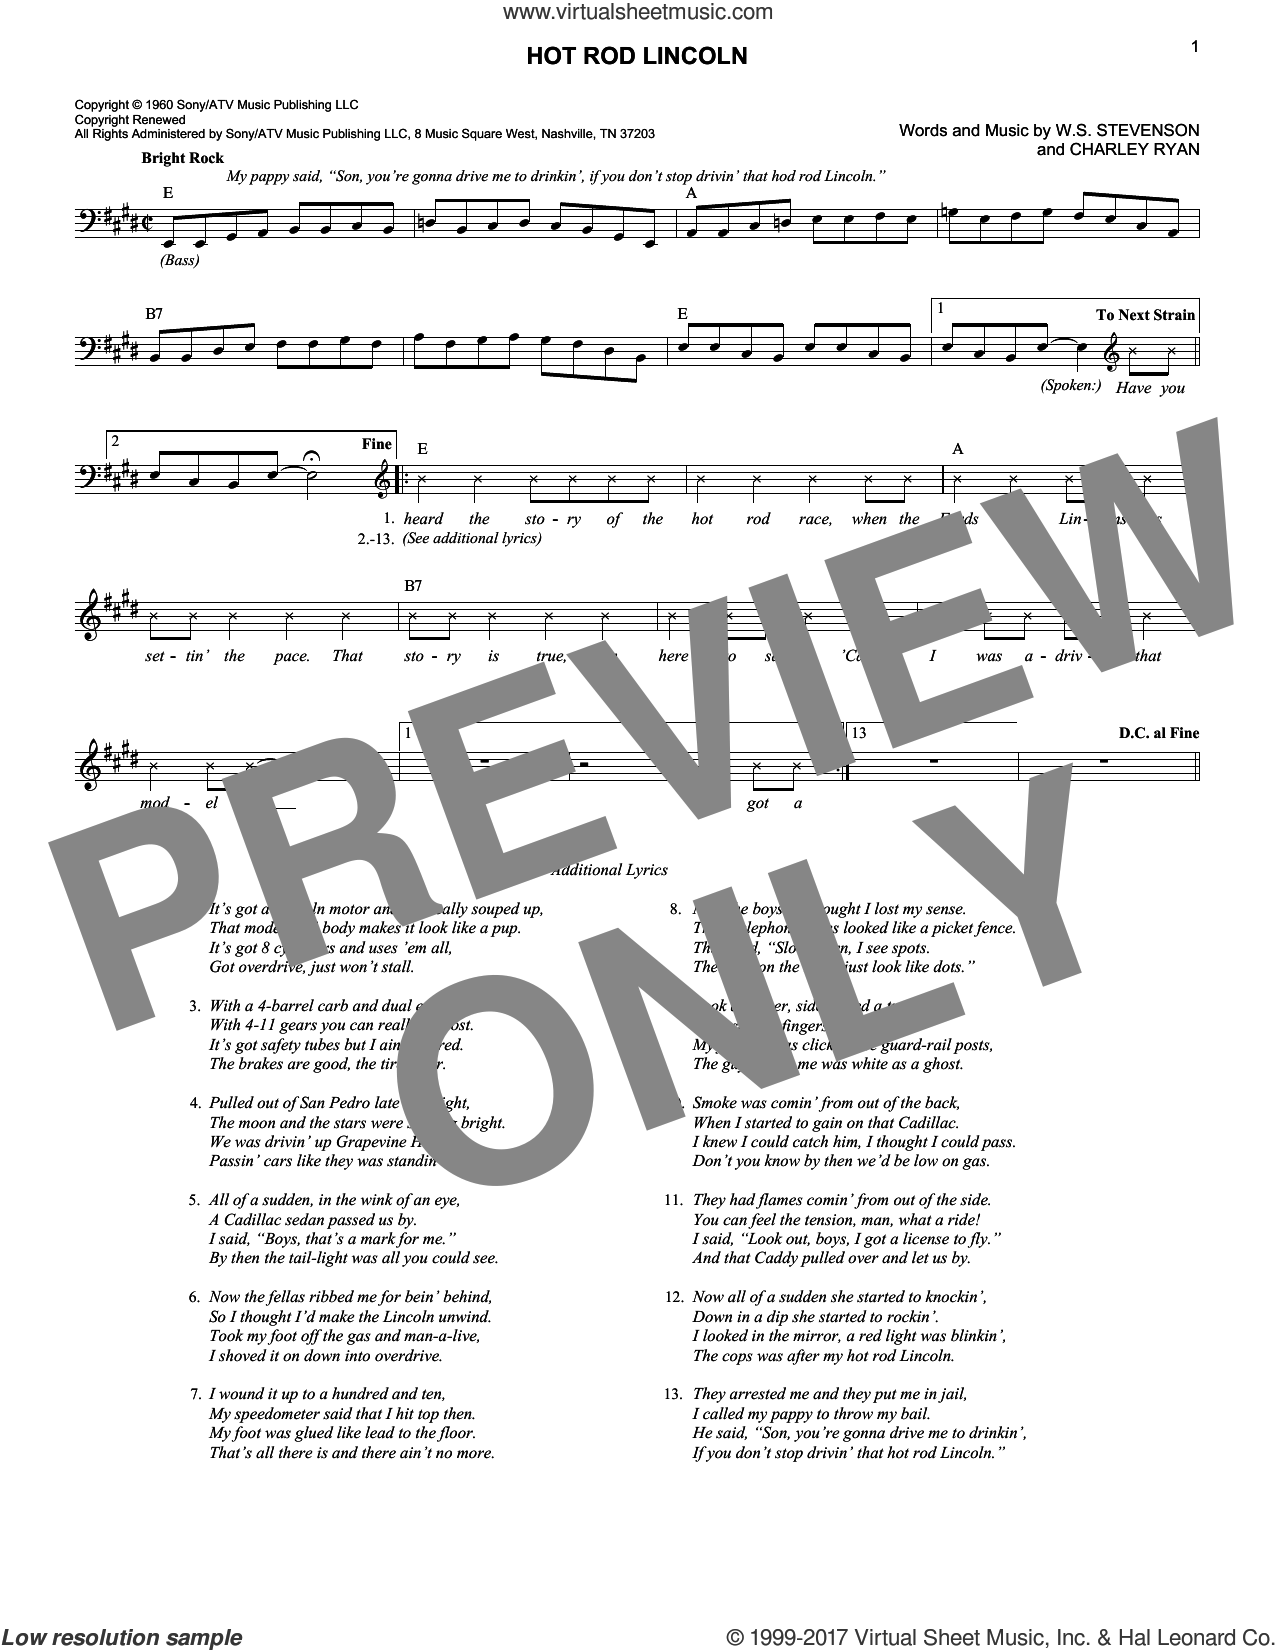 Hot Rod Lincoln sheet music for voice and other instruments (fake book) by Commander Cody, Charlie Ryan, Charley Ryan and William Stevenson, intermediate skill level